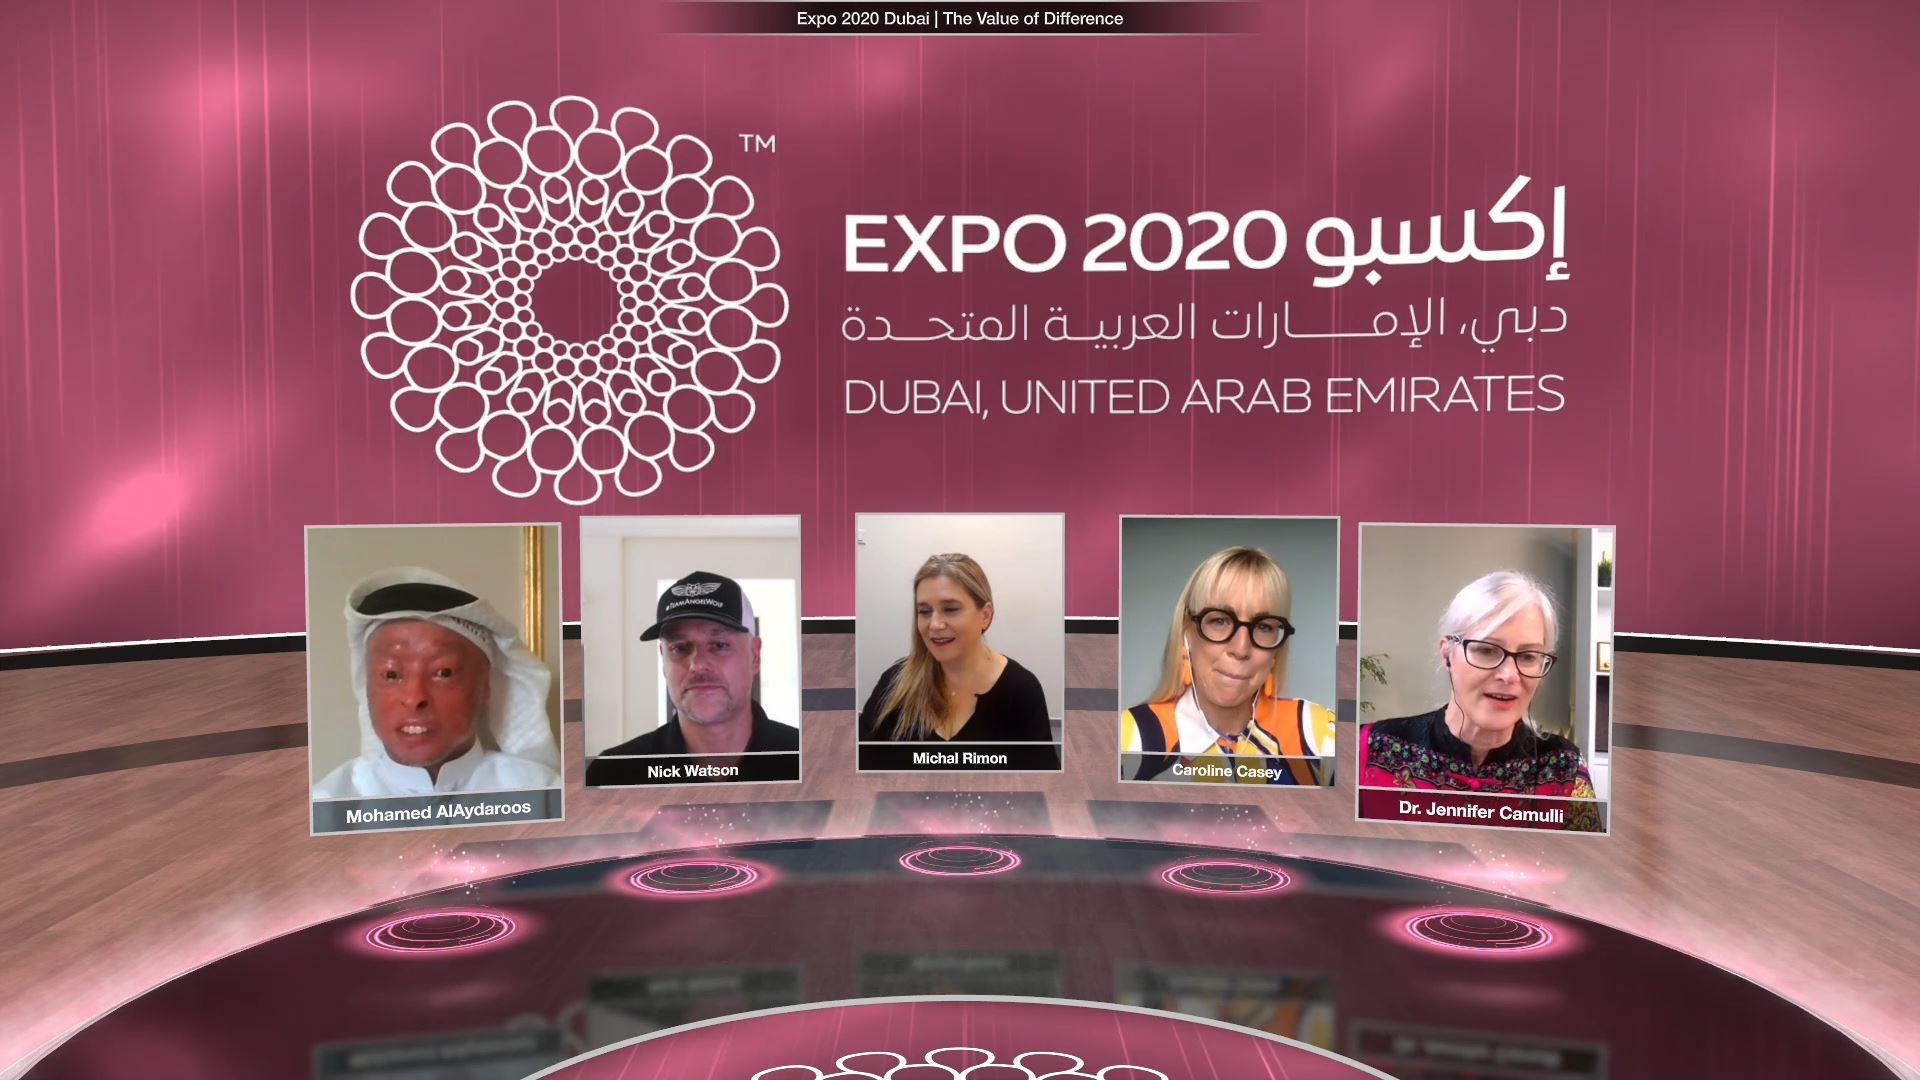 expo 2020 thematic weeks virtual event panel discussion